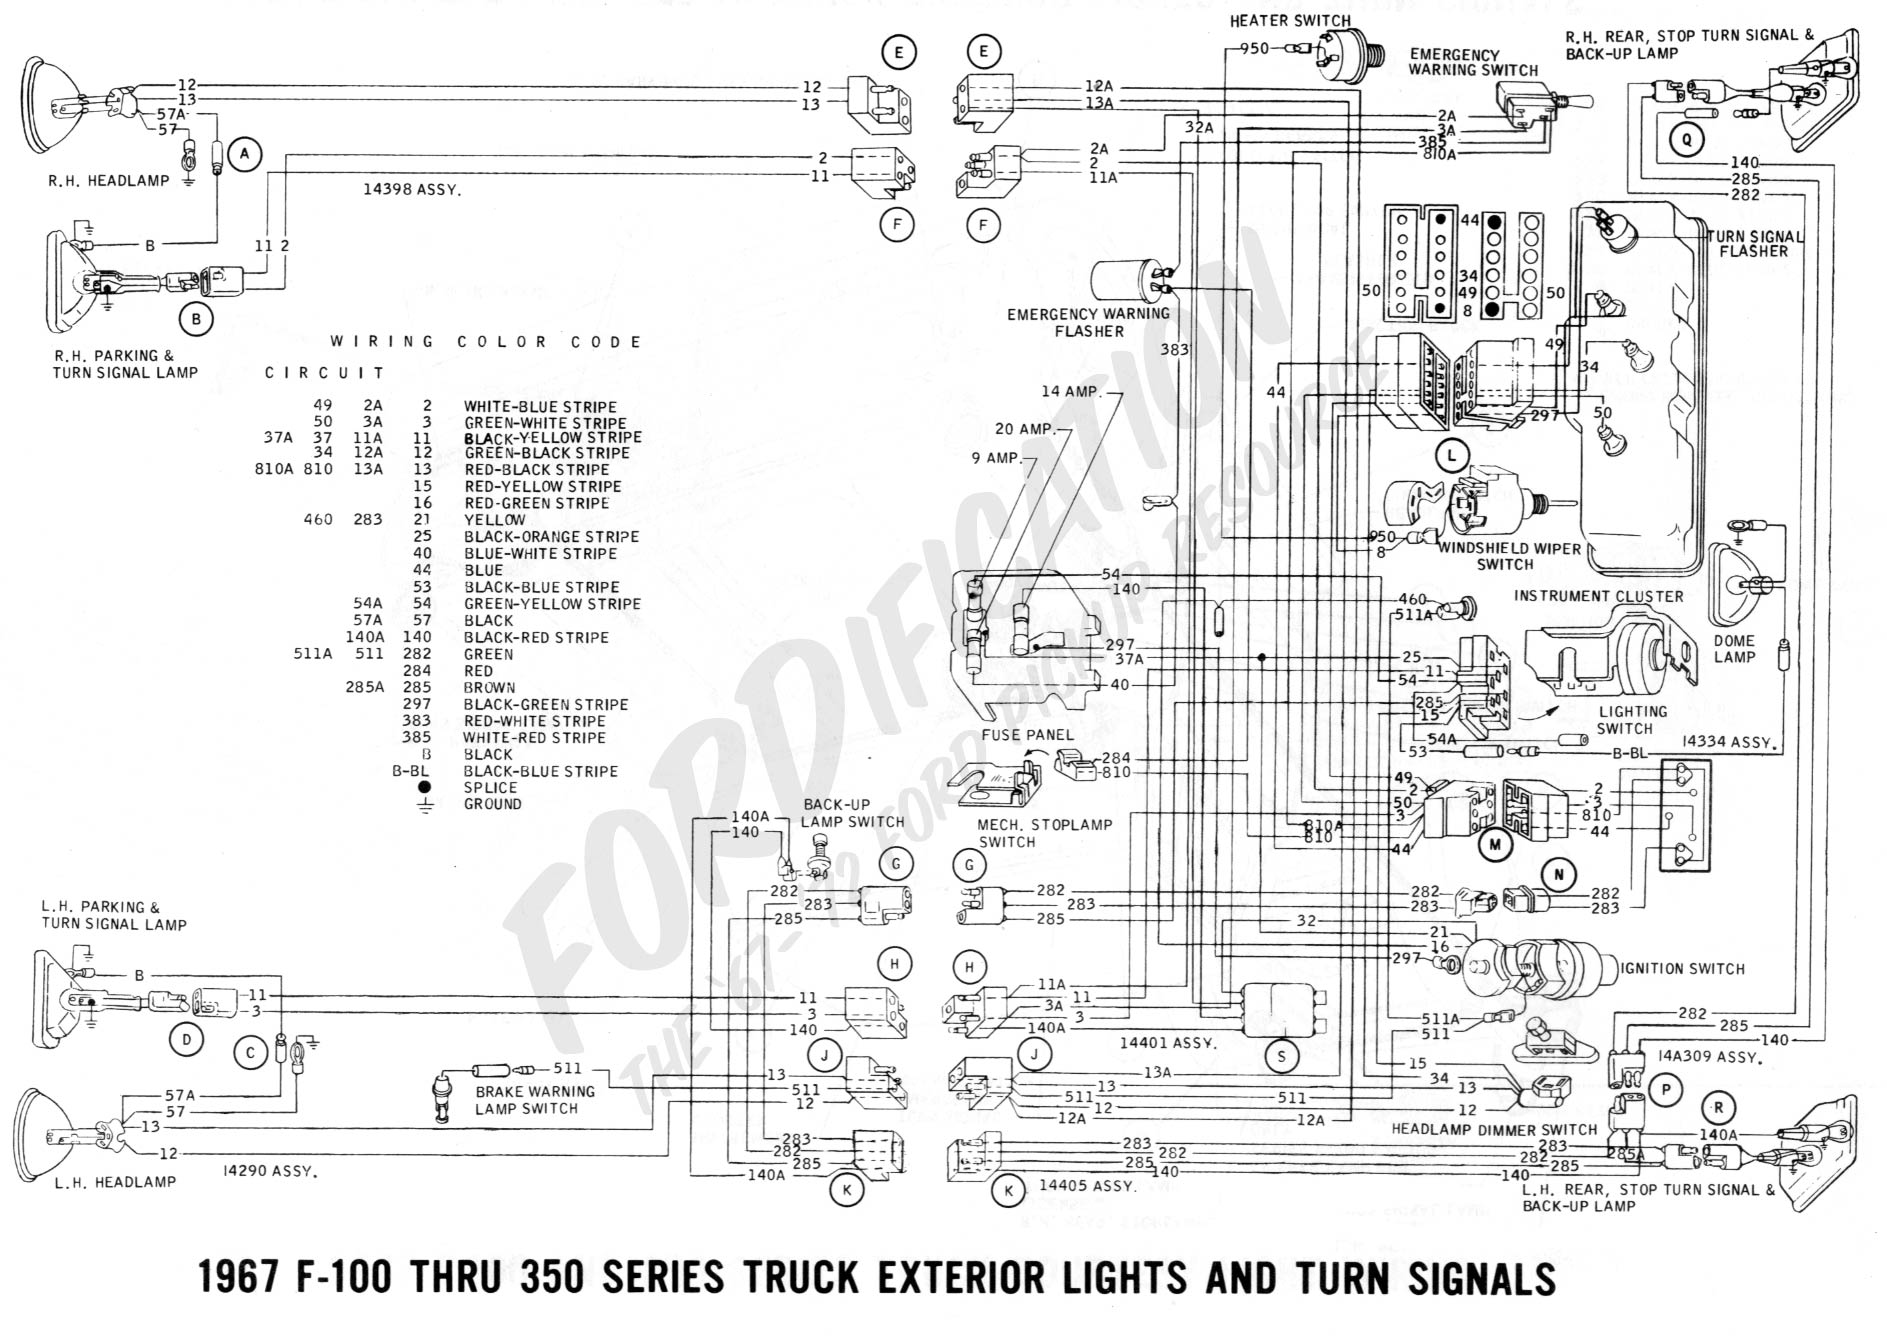 2000 ford f350 headlight wiring diagram 99 f product wiring diagrams u2022 rh genesisventures us